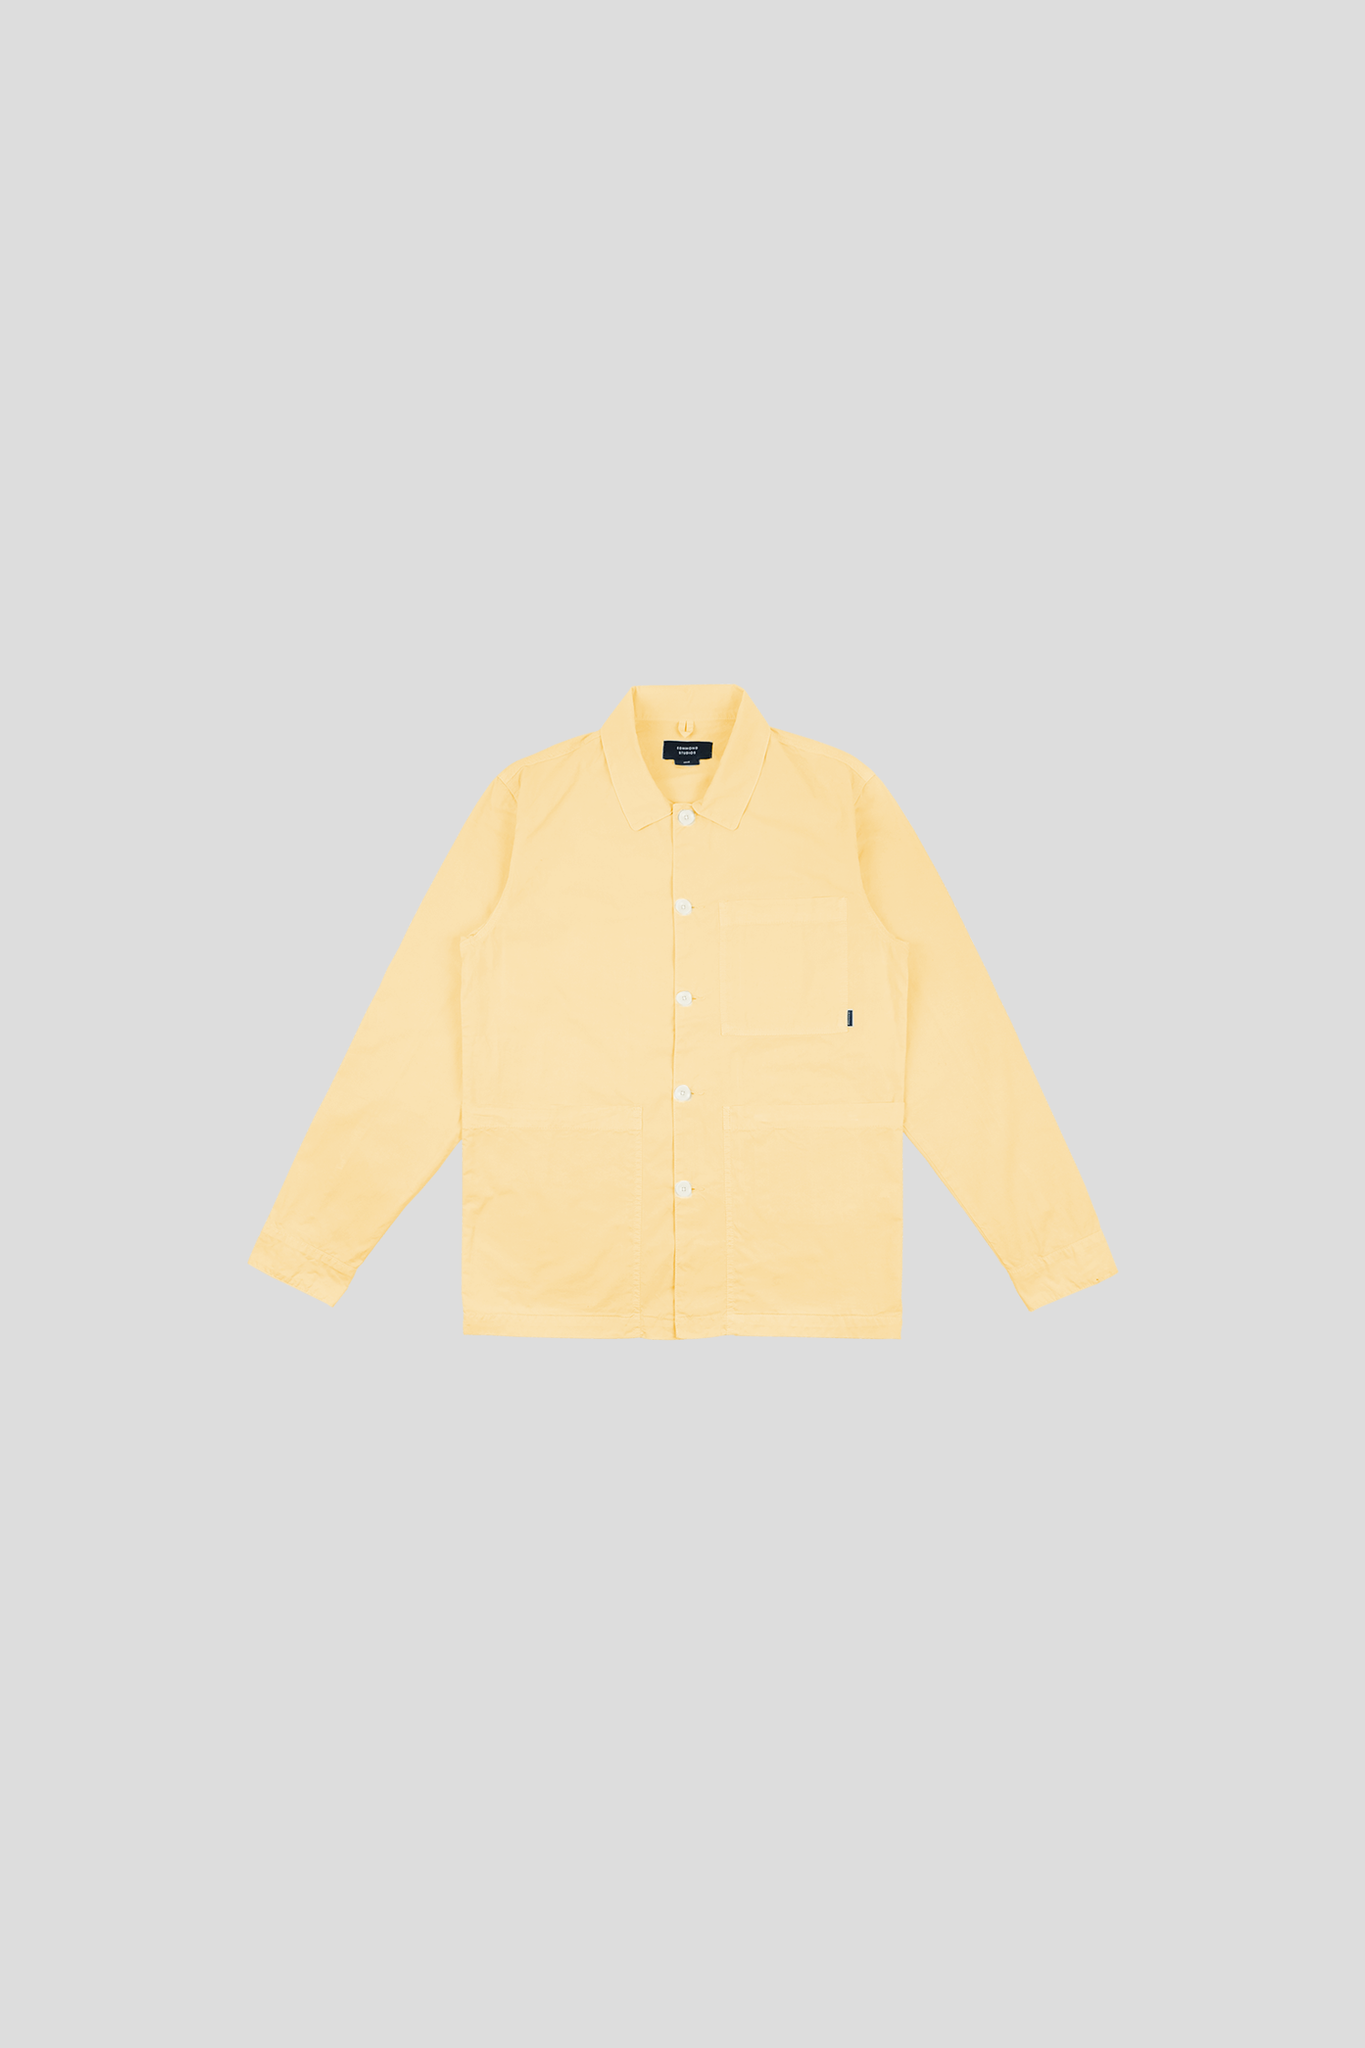 PLAIN YELLOW